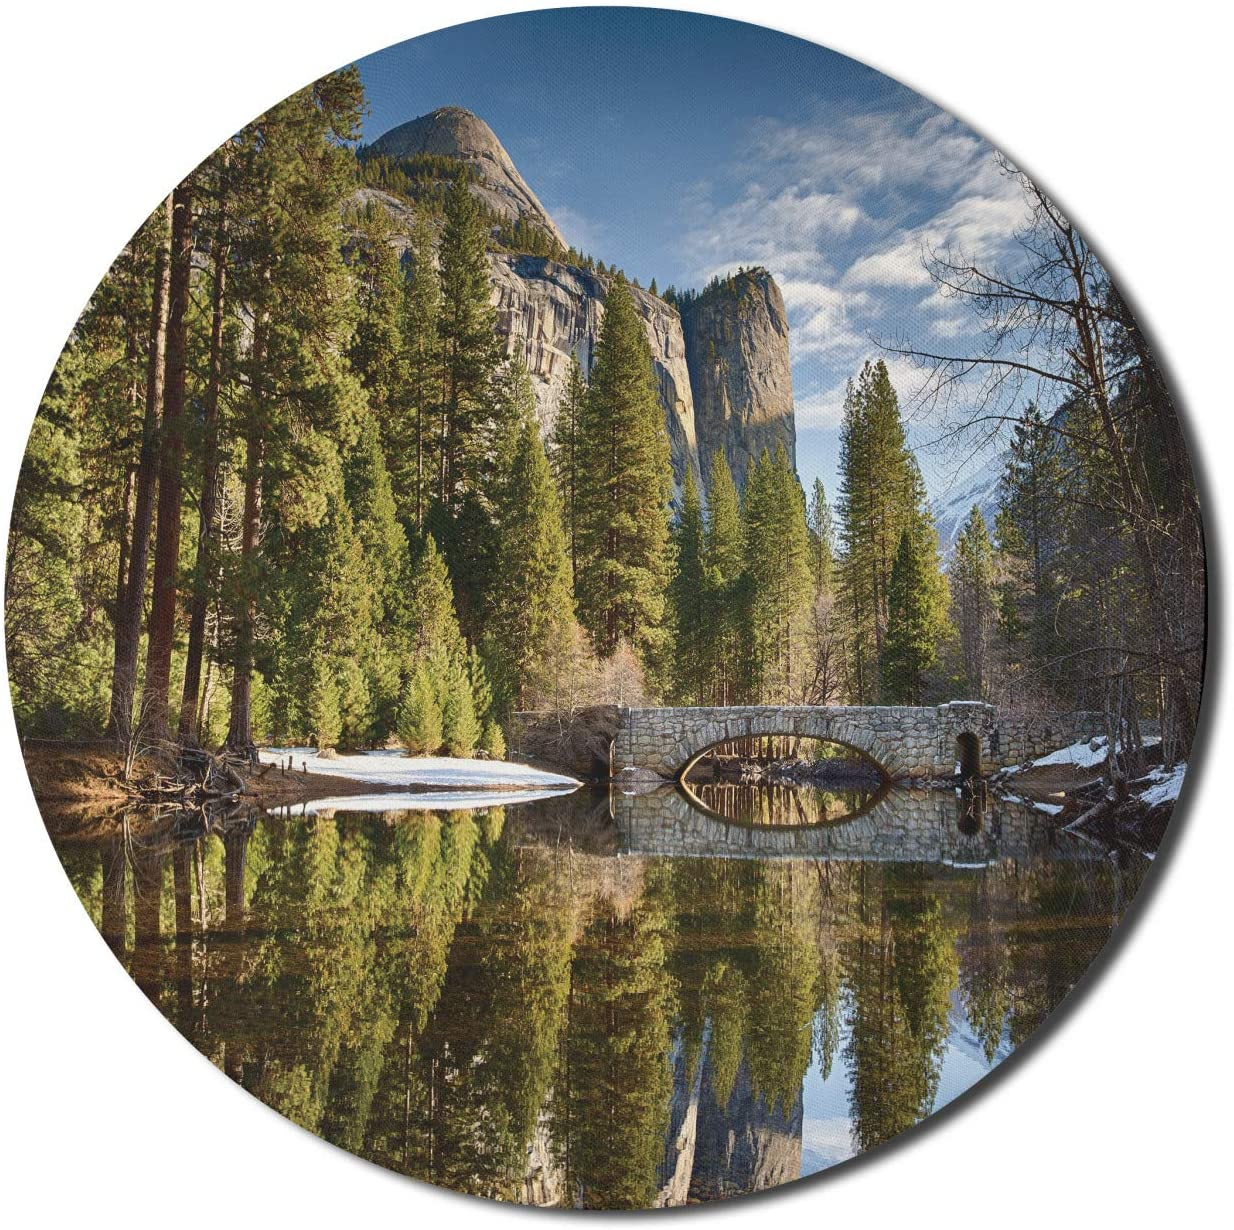 Lunarable Yosemite Mouse Pad for Computers, Stoneman Bridge in Morning at Yosemite National Park Winter with Evergreen Trees Print, Round Non-Slip Thick Rubber Modern Gaming Mousepad, 8